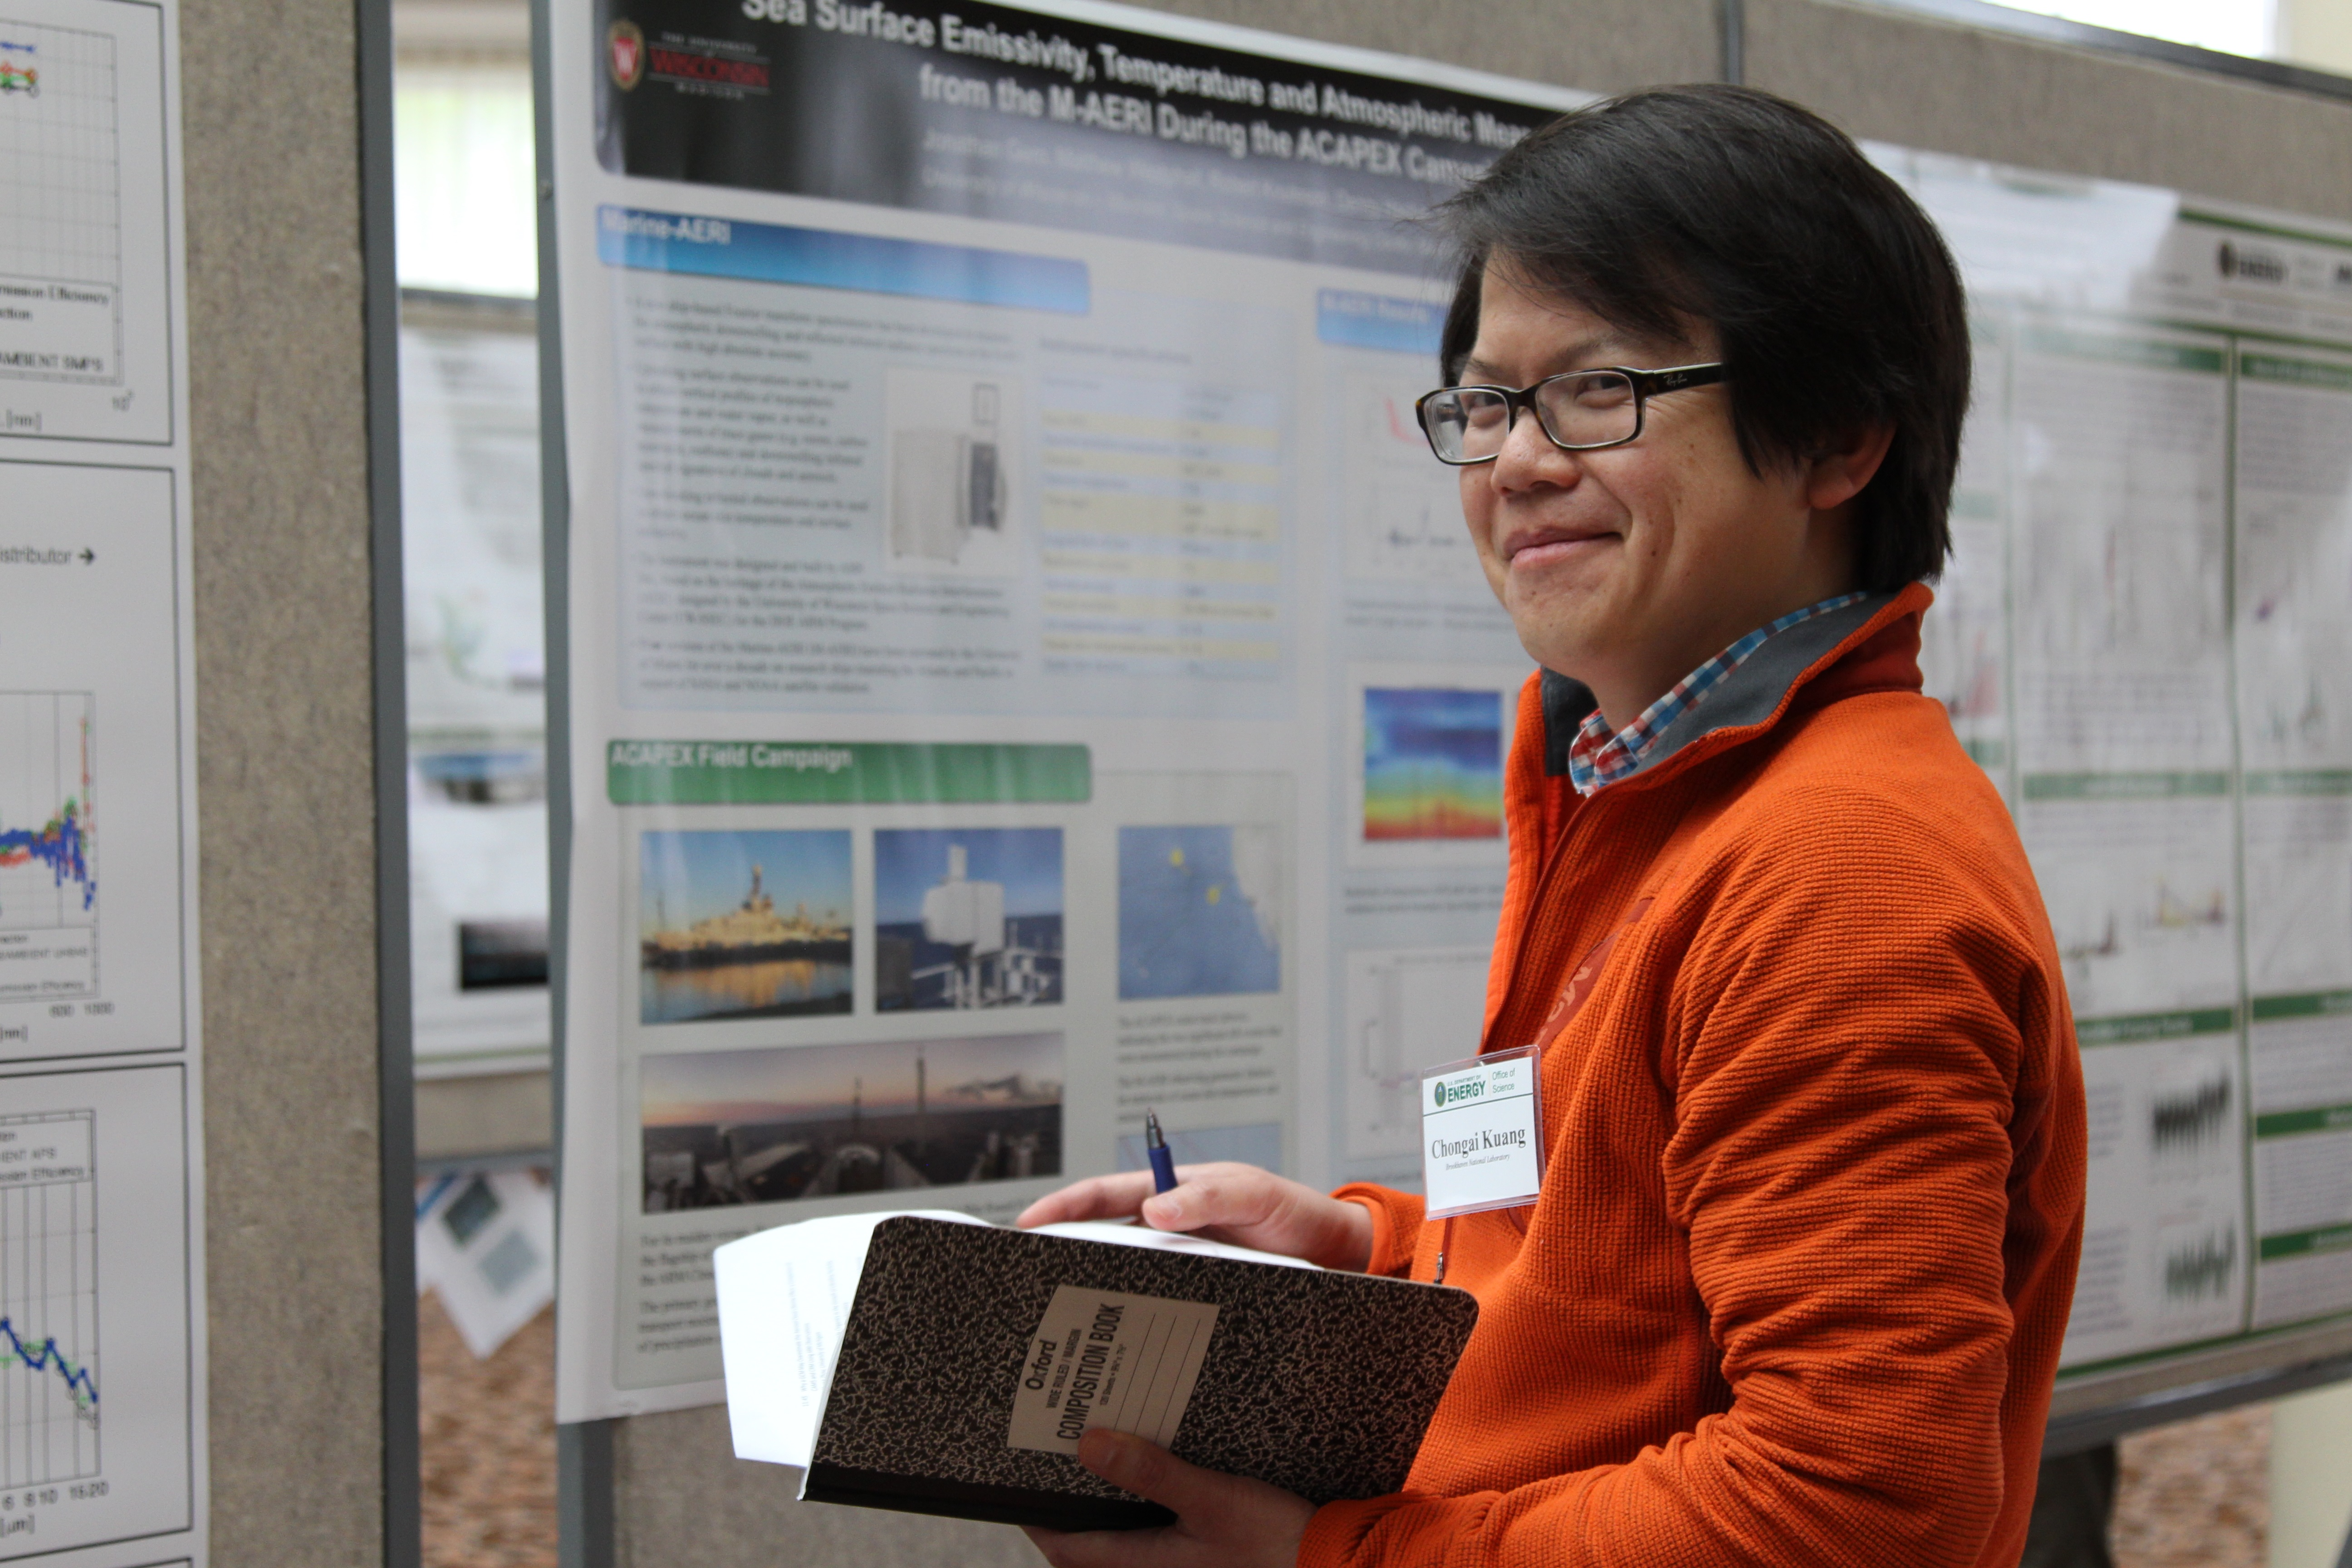 Chongai Kuang of Brookhaven National Laboratory